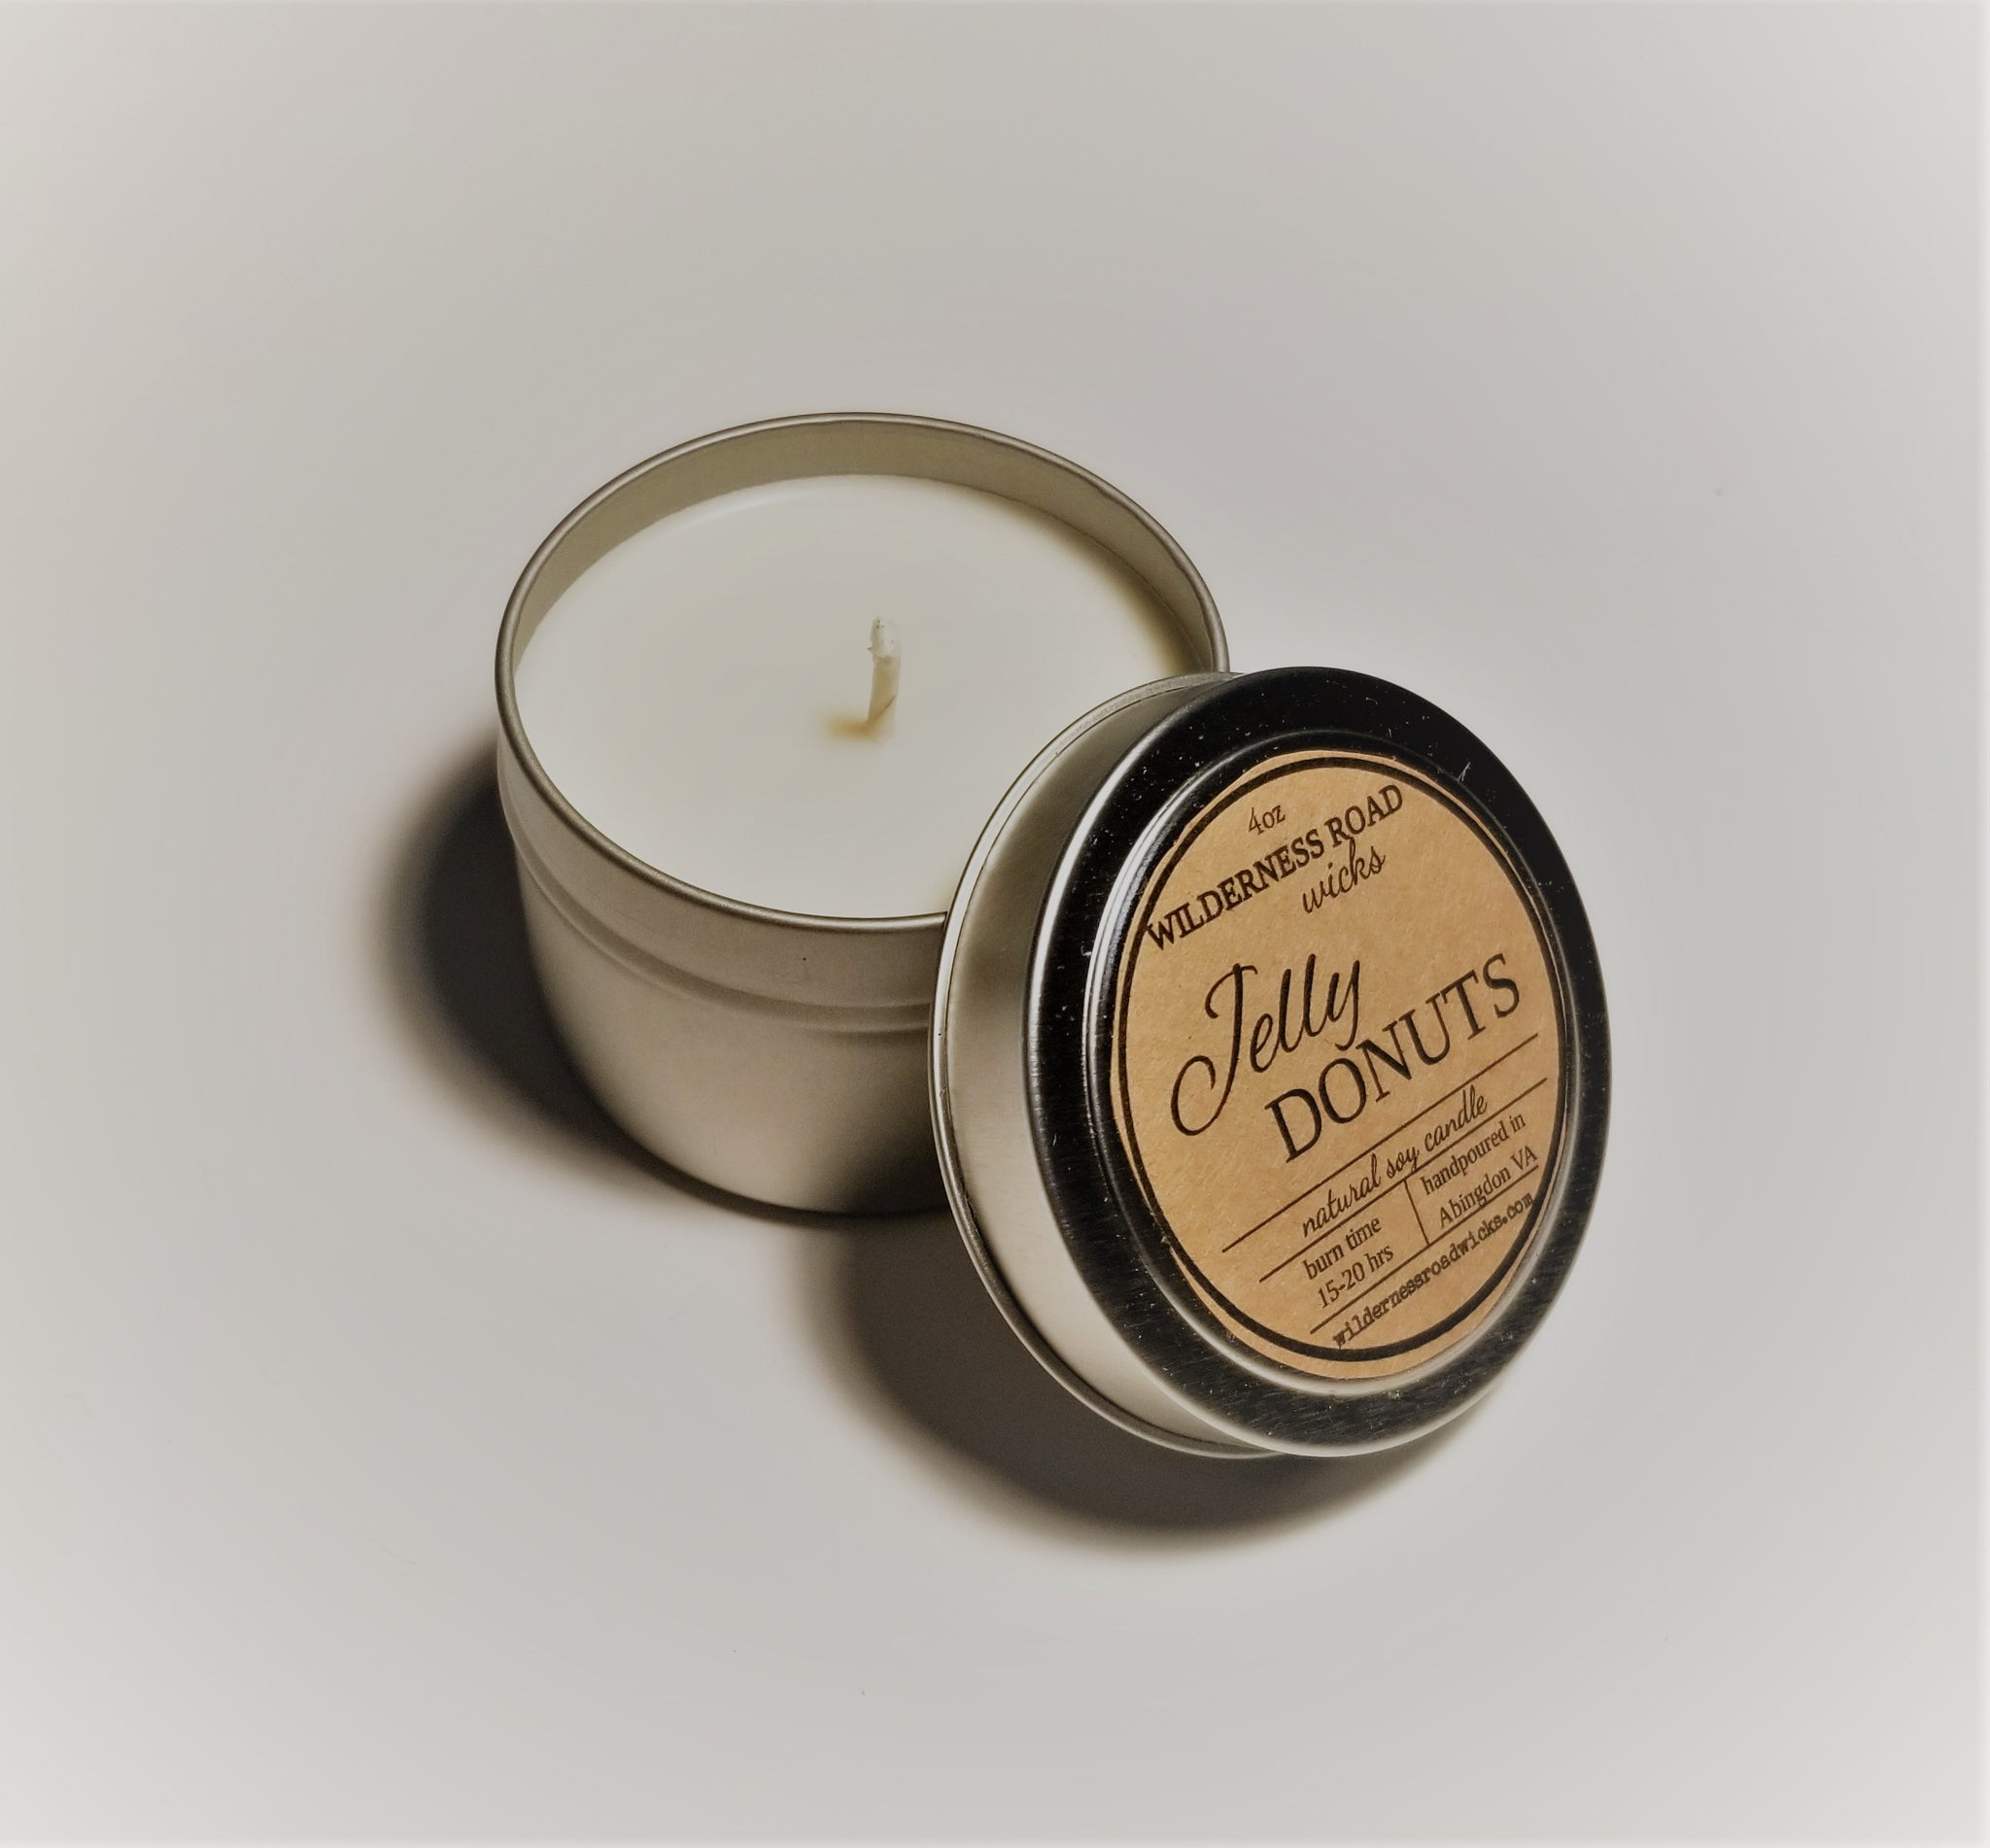 Jelly Donut Travel Tin Soy Candle 4 oz.